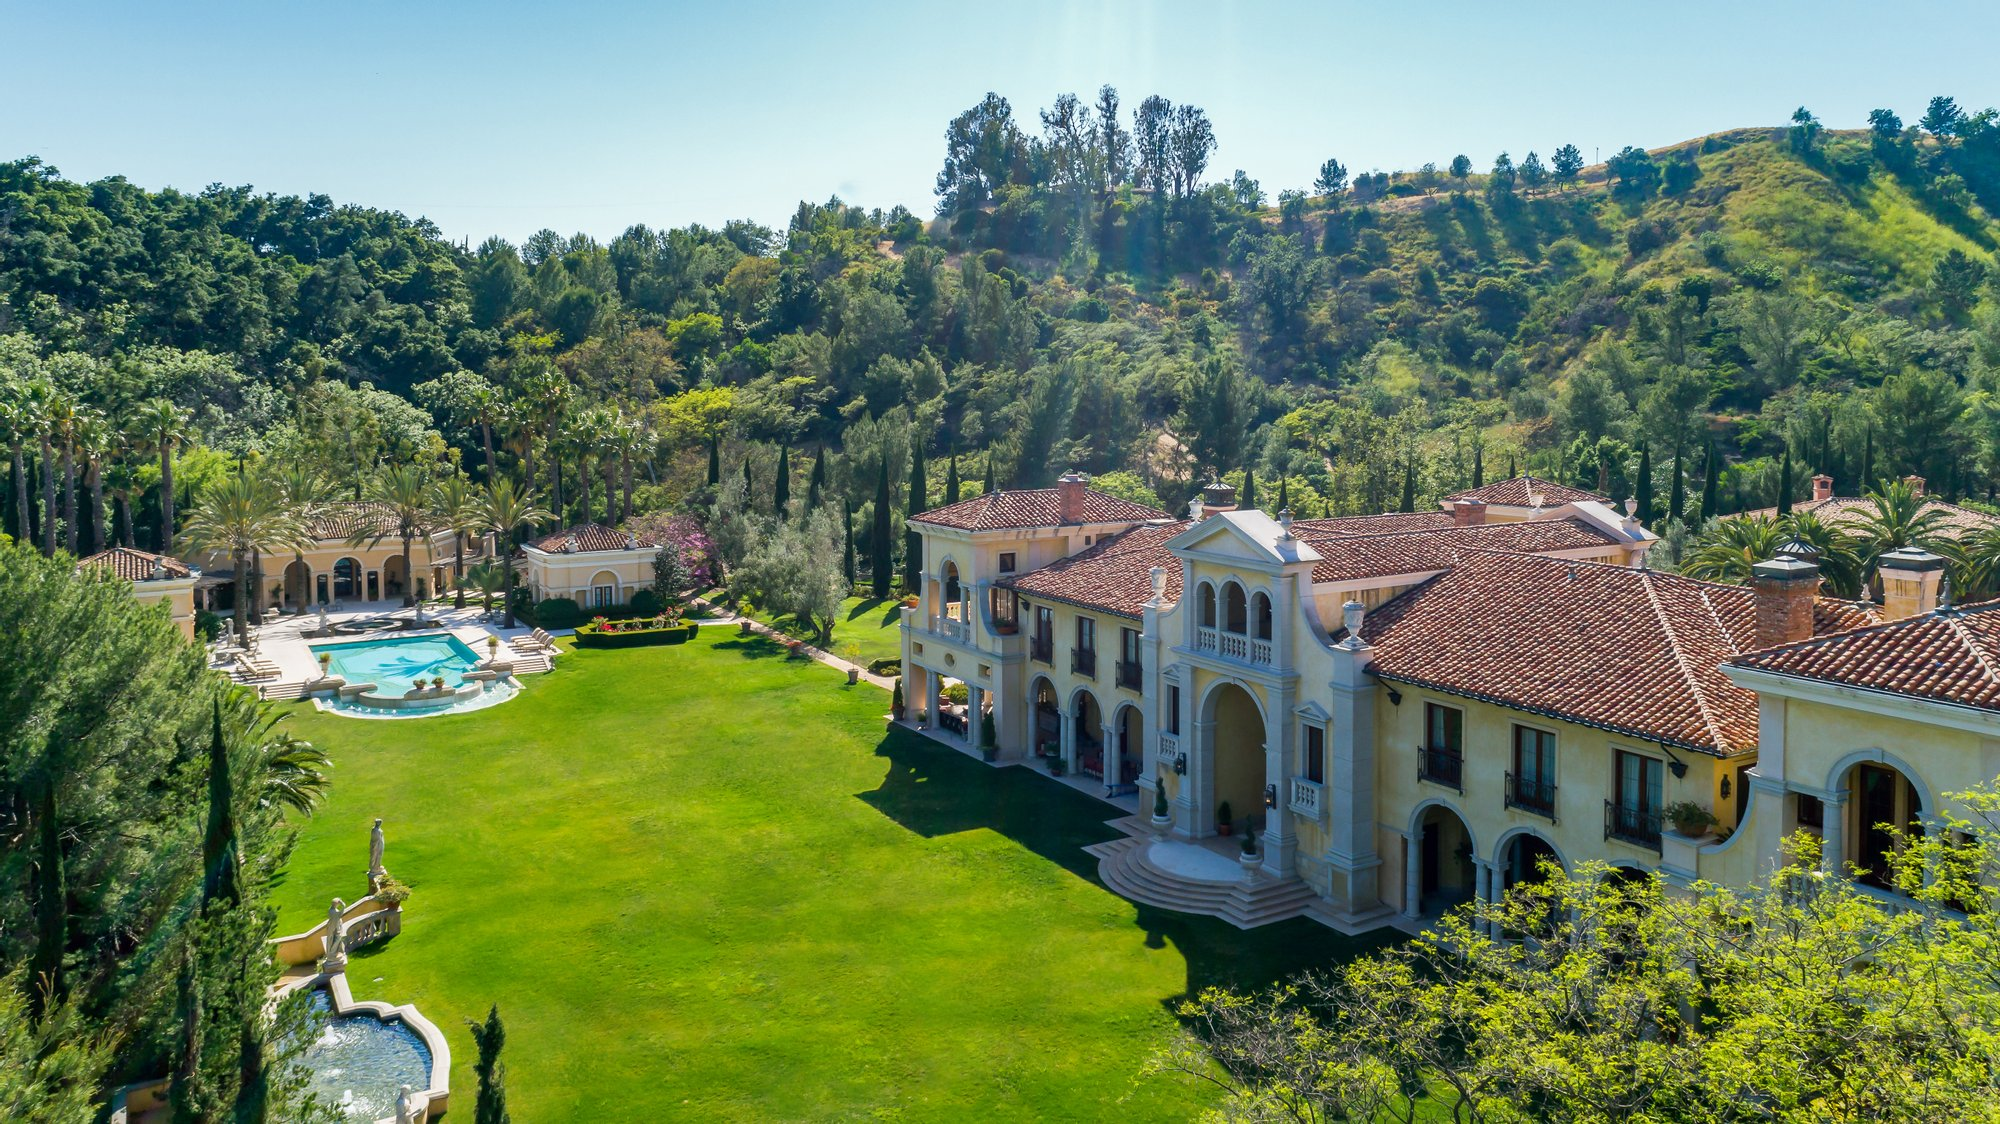 The biggest mansion house in America